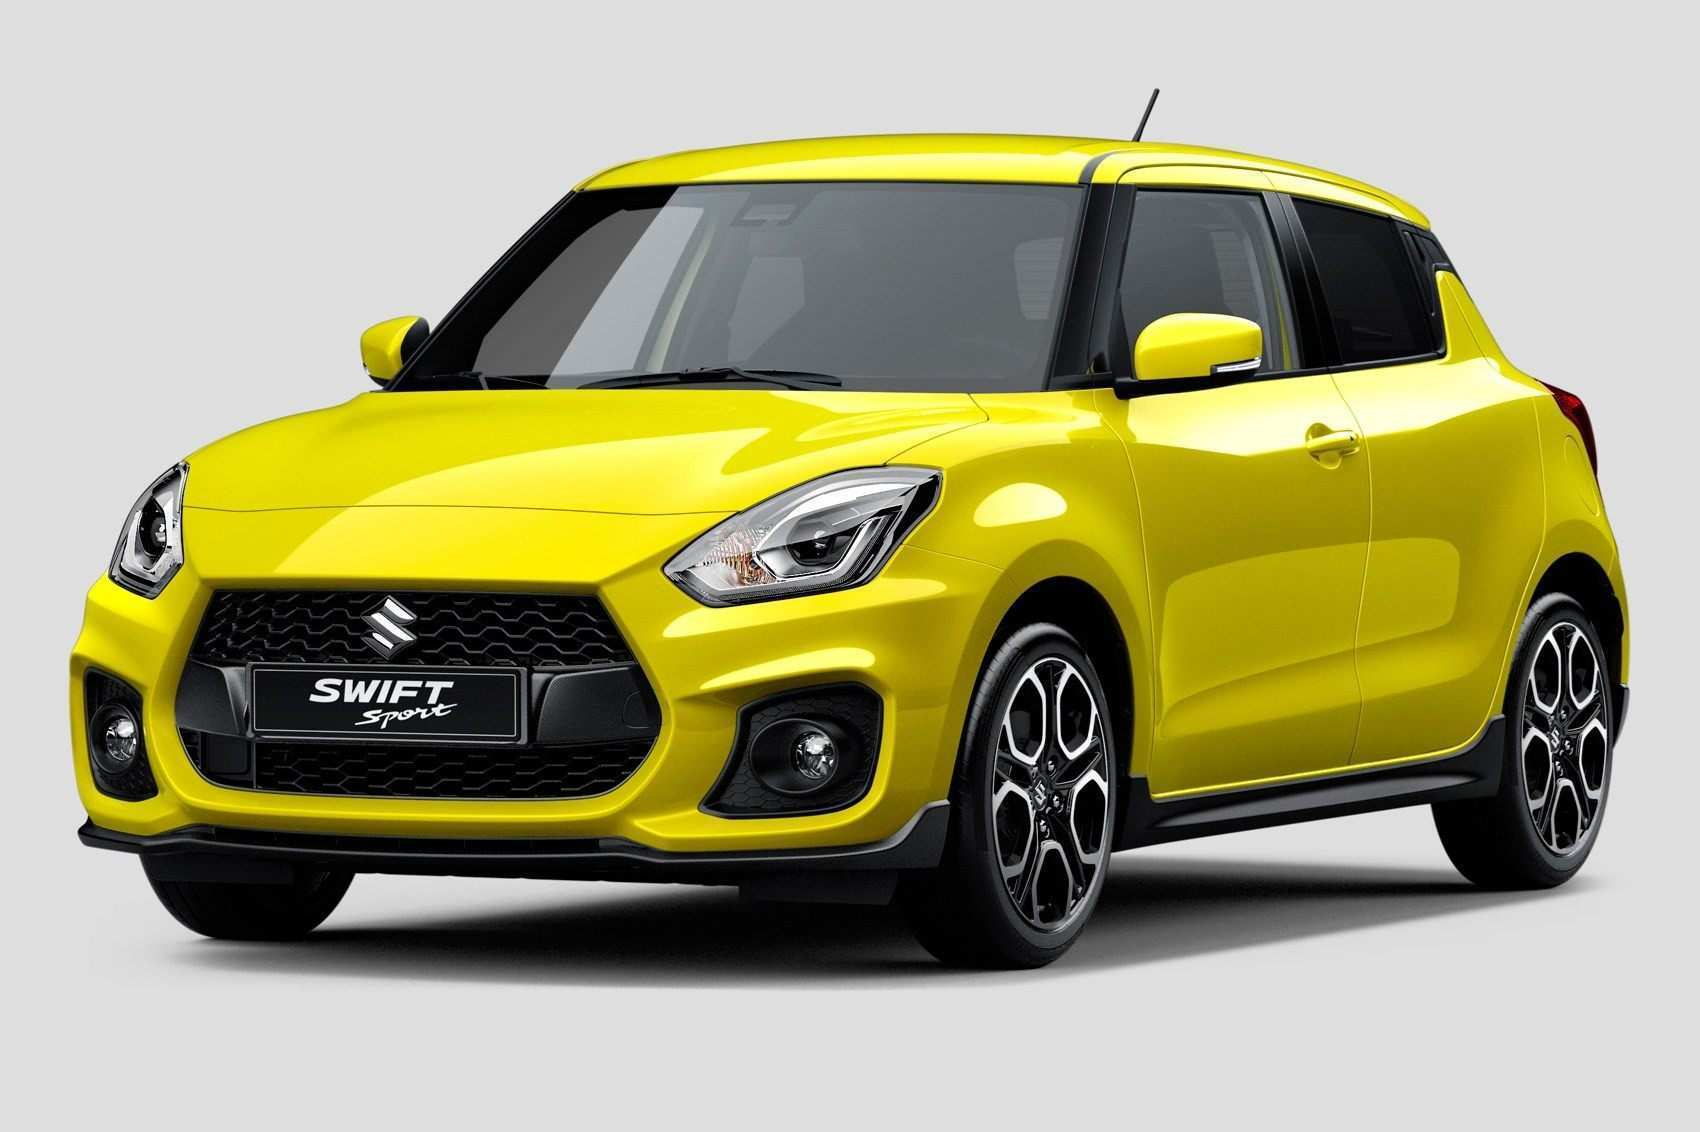 52 A 2020 Suzuki Swift Overview